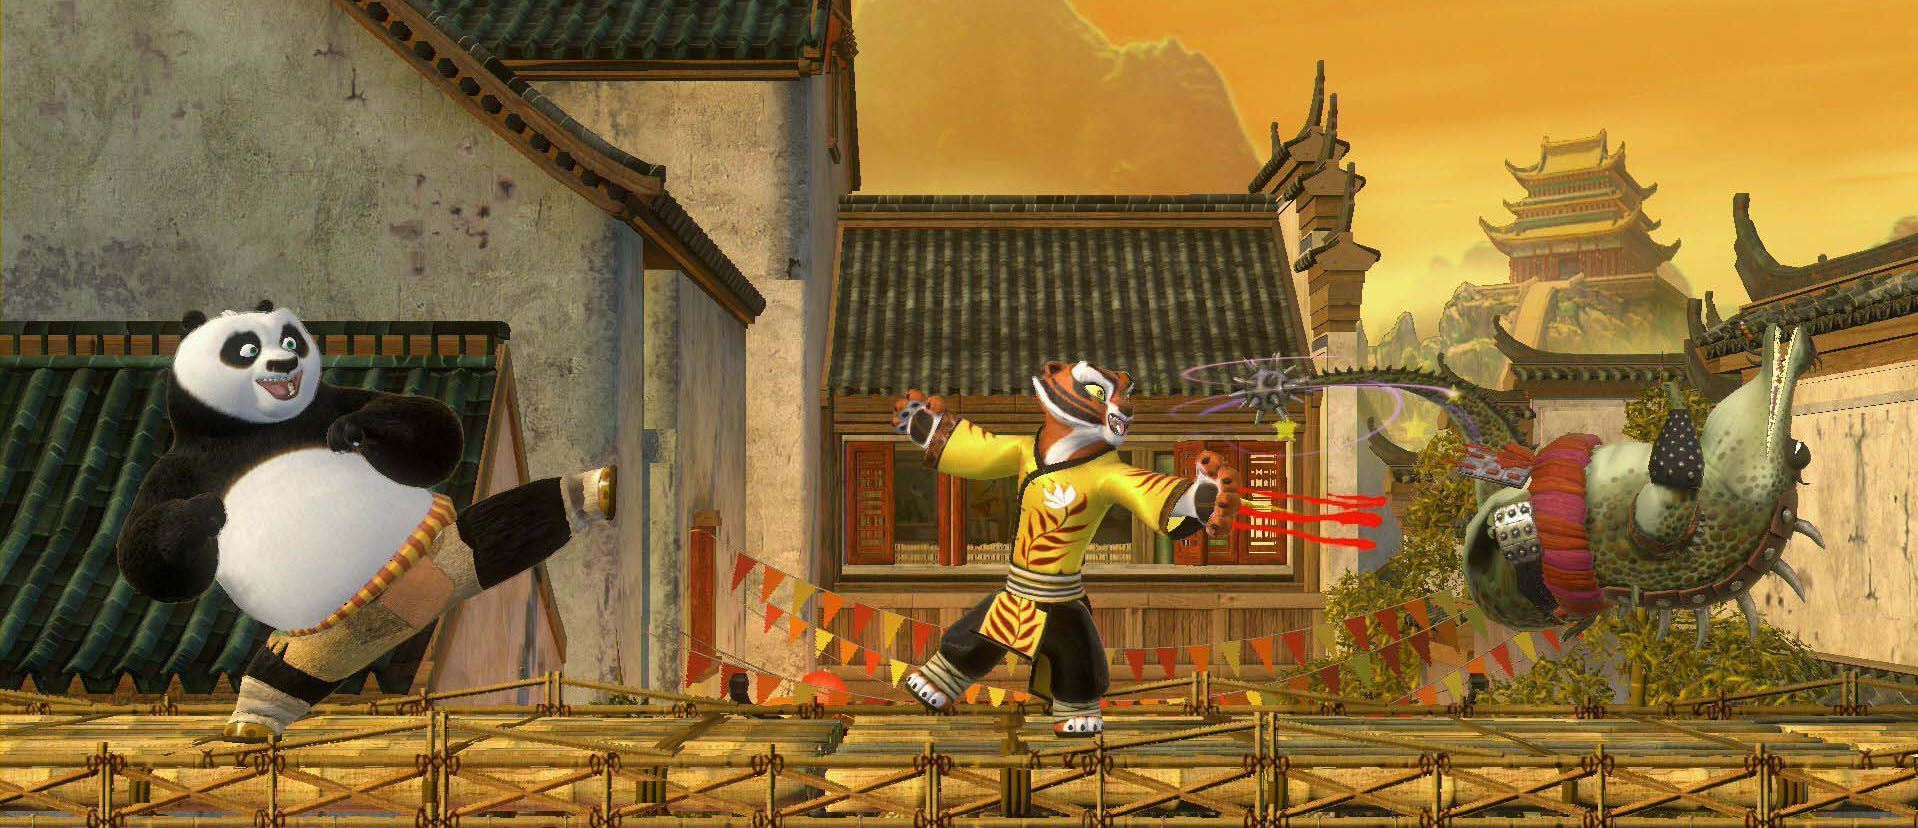 Free online action karate games for xbox